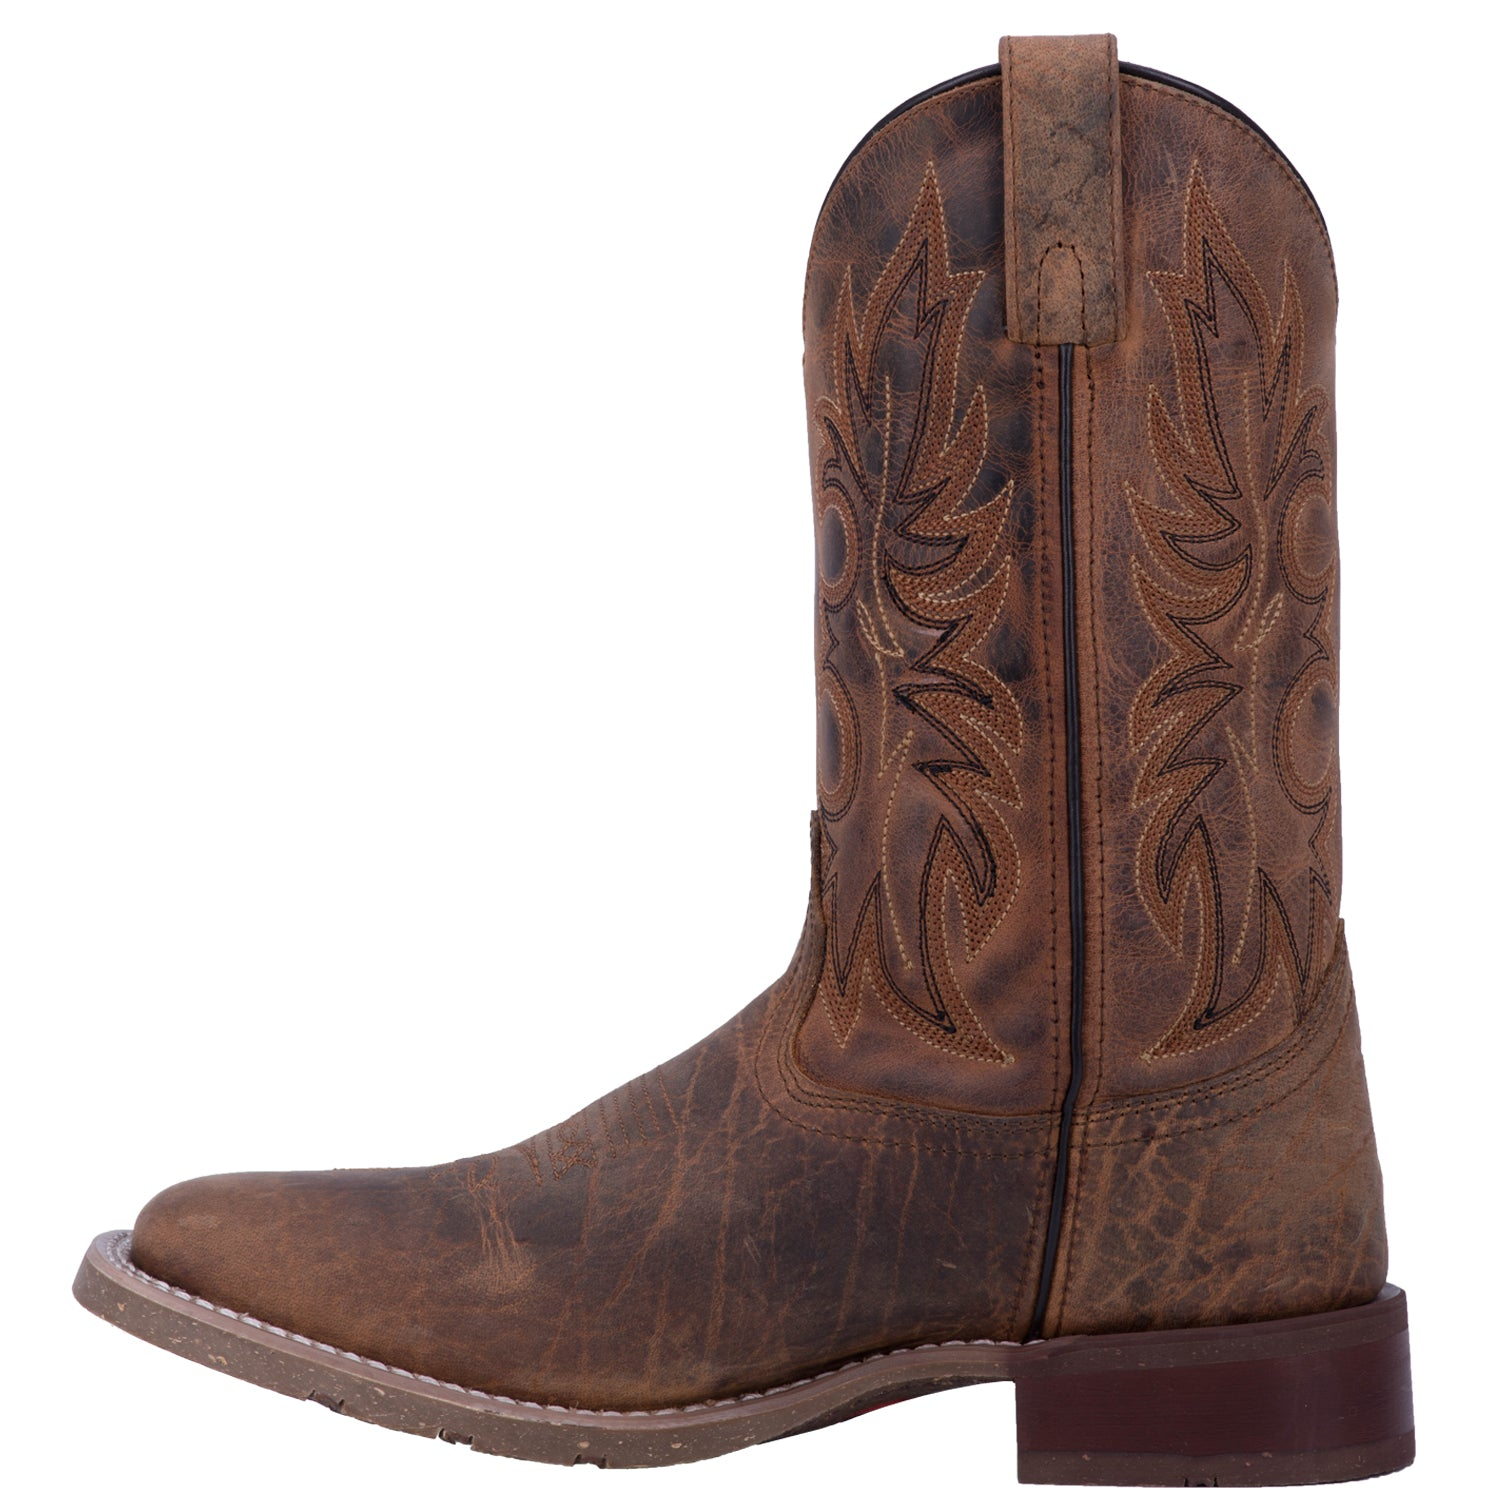 DURANT LEATHER BOOT 4252387311658